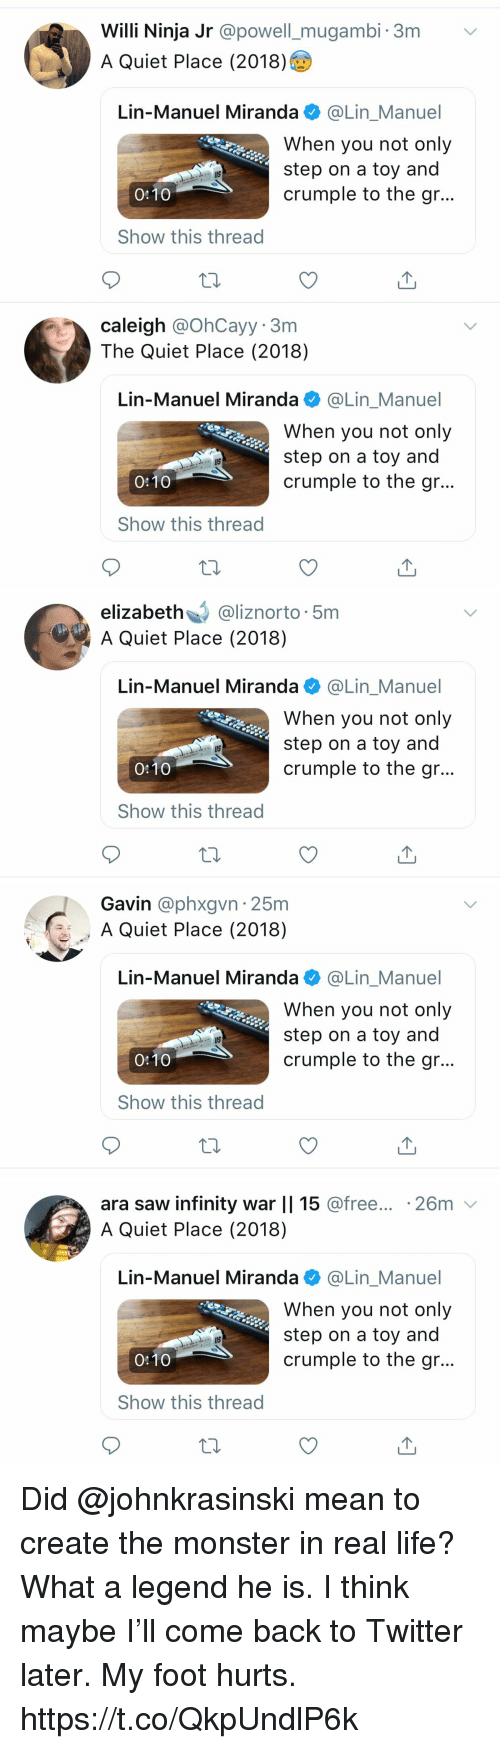 Life, Memes, and Monster: Willi Ninja Jr @powell_mugambi. 3m v  A Quiet Place (2018)  Lin-Manuel Miranda @Lin_Manuel  When you not only  step on a toy and  crumple to the gr..  US  0:10  Show this thread  caleigh @OhCayy. 3m  The Quiet Place (2018)  Lin-Manuel Miranda @Lin_Manuel  When you not only  step on a toy and  crumple to the gr...  US  0:10  Show this thread   elizabeth@liznorto 5m  A Quiet Place (2018)  Lin-Manuel Miranda e》 @Lin.Manuel  When you not only  step on a toy and  crumple to the gr...  US  0:10  Show this thread   Gavin @phxgvn 25m  A Quiet Place (2018)  Lin-Manuel Miranda@Lin_Manuel  When you not only  step on a toy and  crumple to the gr..  US  0:10  Show this thread   ara saw infinity war    15 @free... .26m v  A Quiet Place (2018)  Lin-Manuel Miranda @Lin_Manuel  When you not only  step on a toy and  crumple to the gr...  US  0:10  Show this thread Did @johnkrasinski mean to create the monster in real life? What a legend he is.  I think maybe I'll come back to Twitter later. My foot hurts. https://t.co/QkpUndlP6k